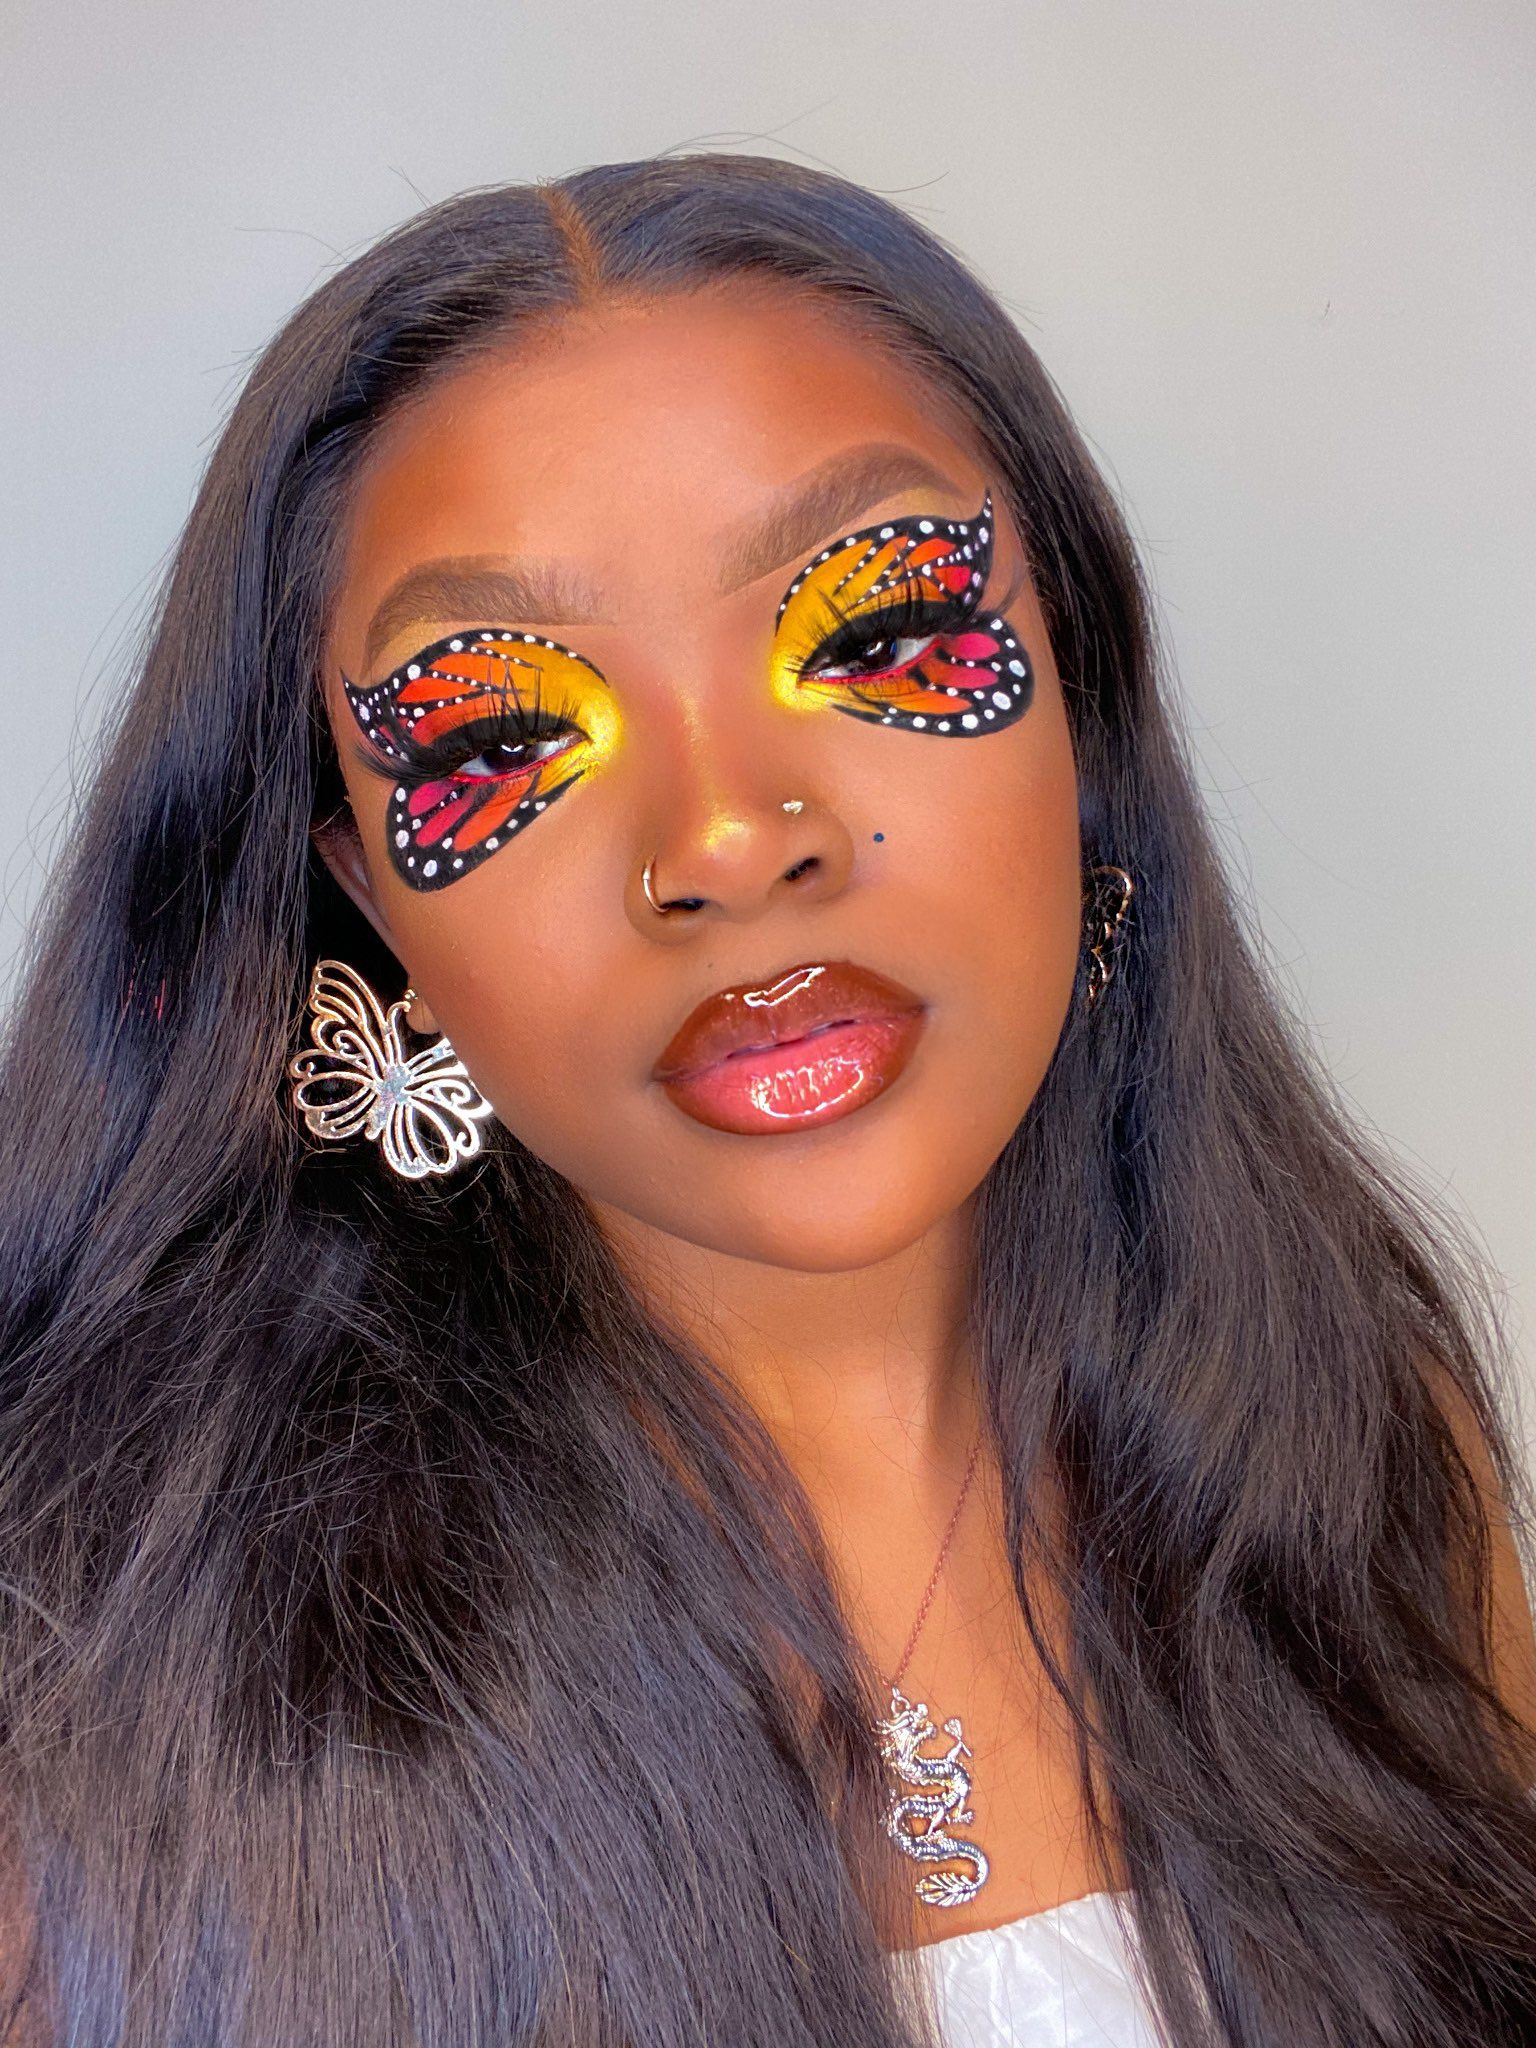 Justice For Breonna Taylor On Twitter Creative Eye Makeup Butterfly Makeup Eye Makeup